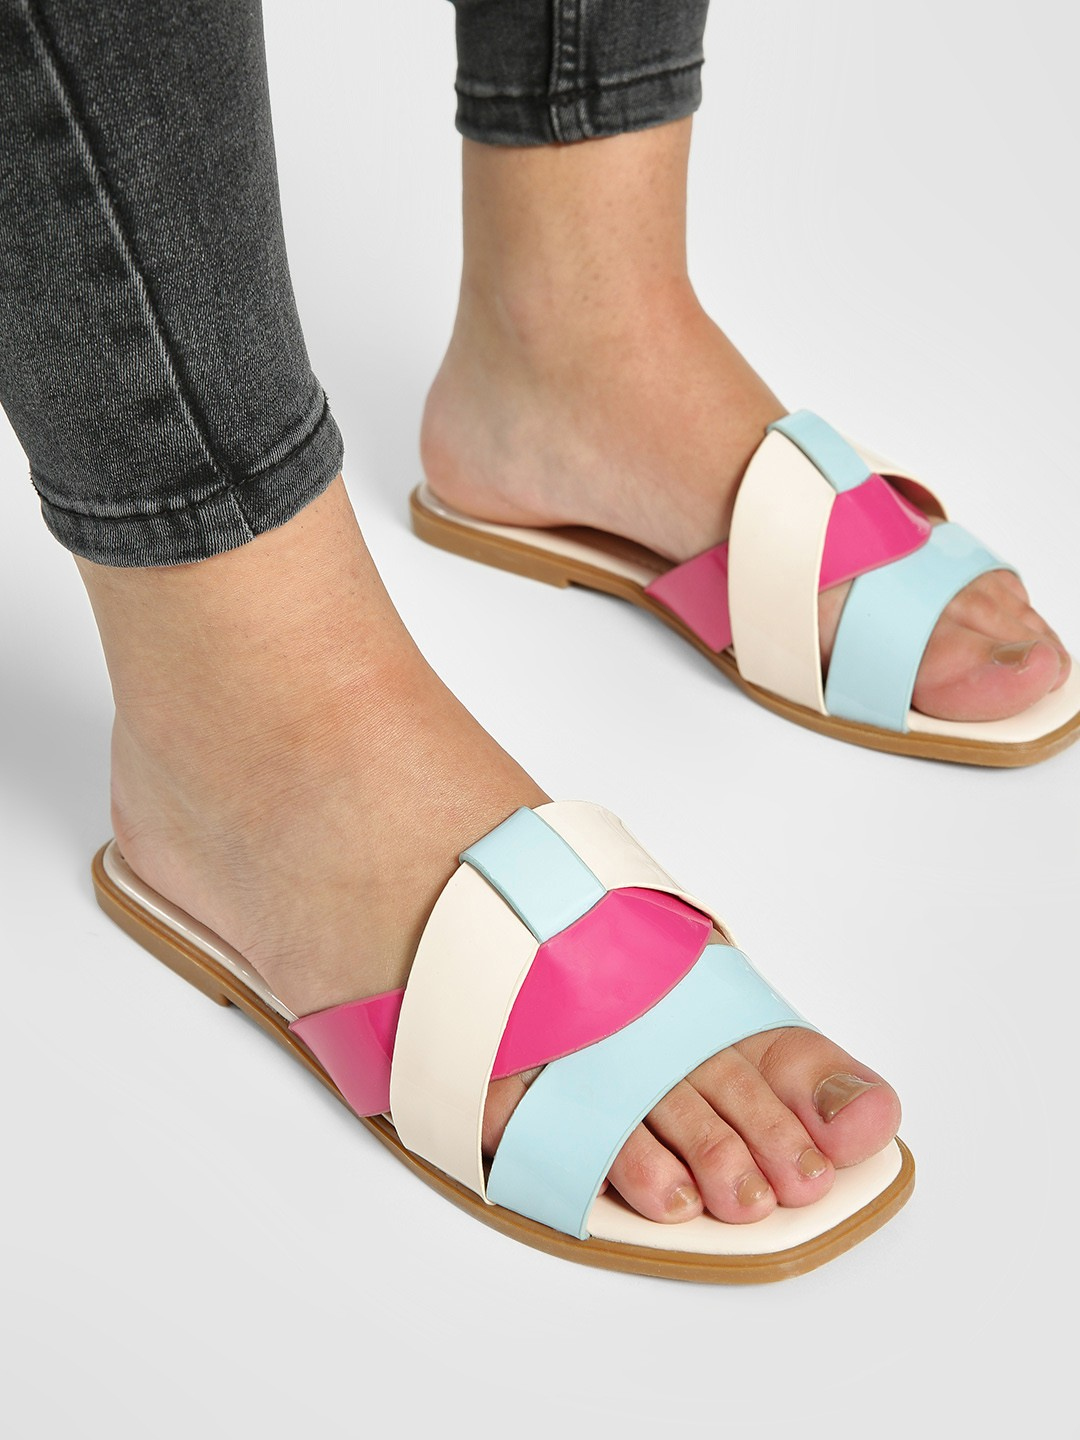 My Foot Couture Cream Patent Multi-Strap Flat Sandals 1